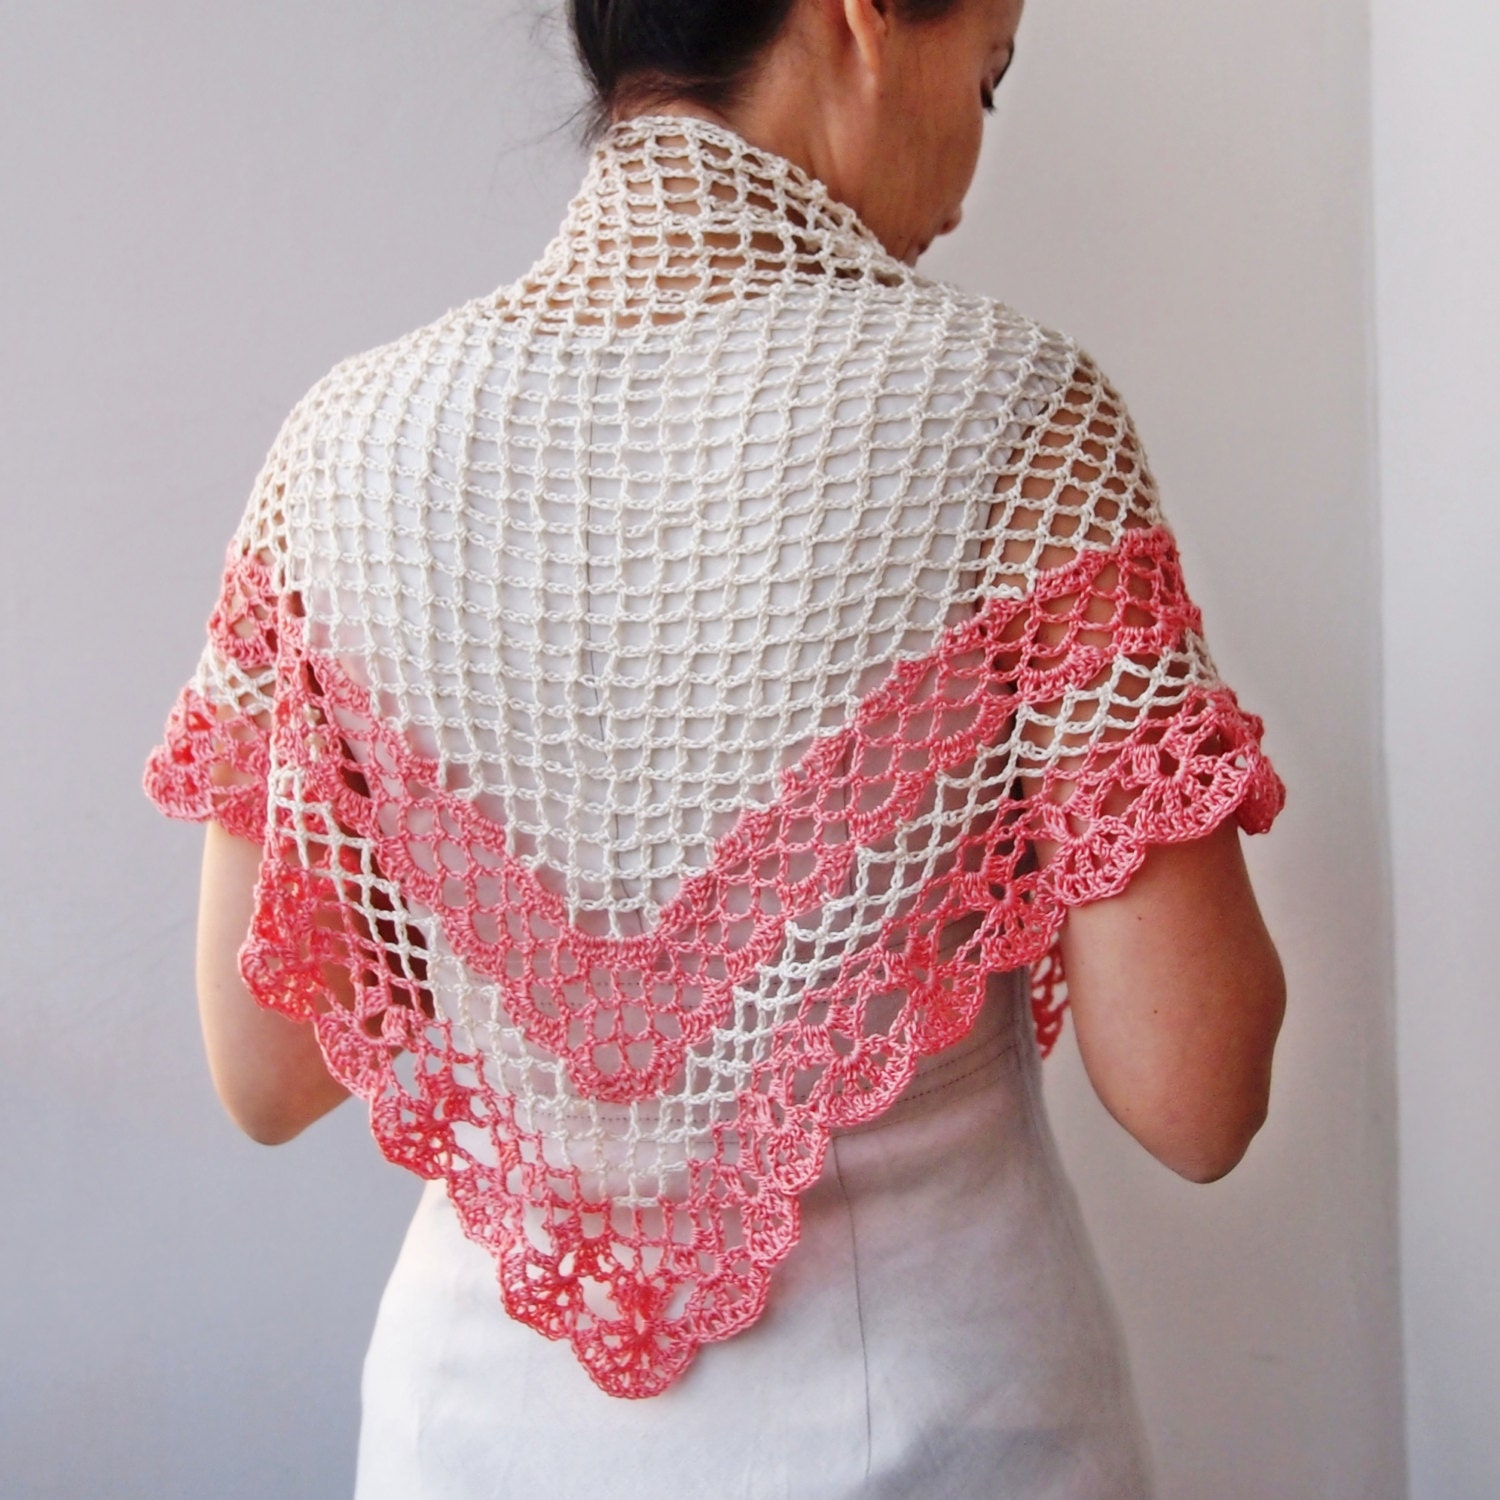 Crochet Triangle Shawl Patterns Free : Crochet pattern shawl women triangle shawl crochet lace